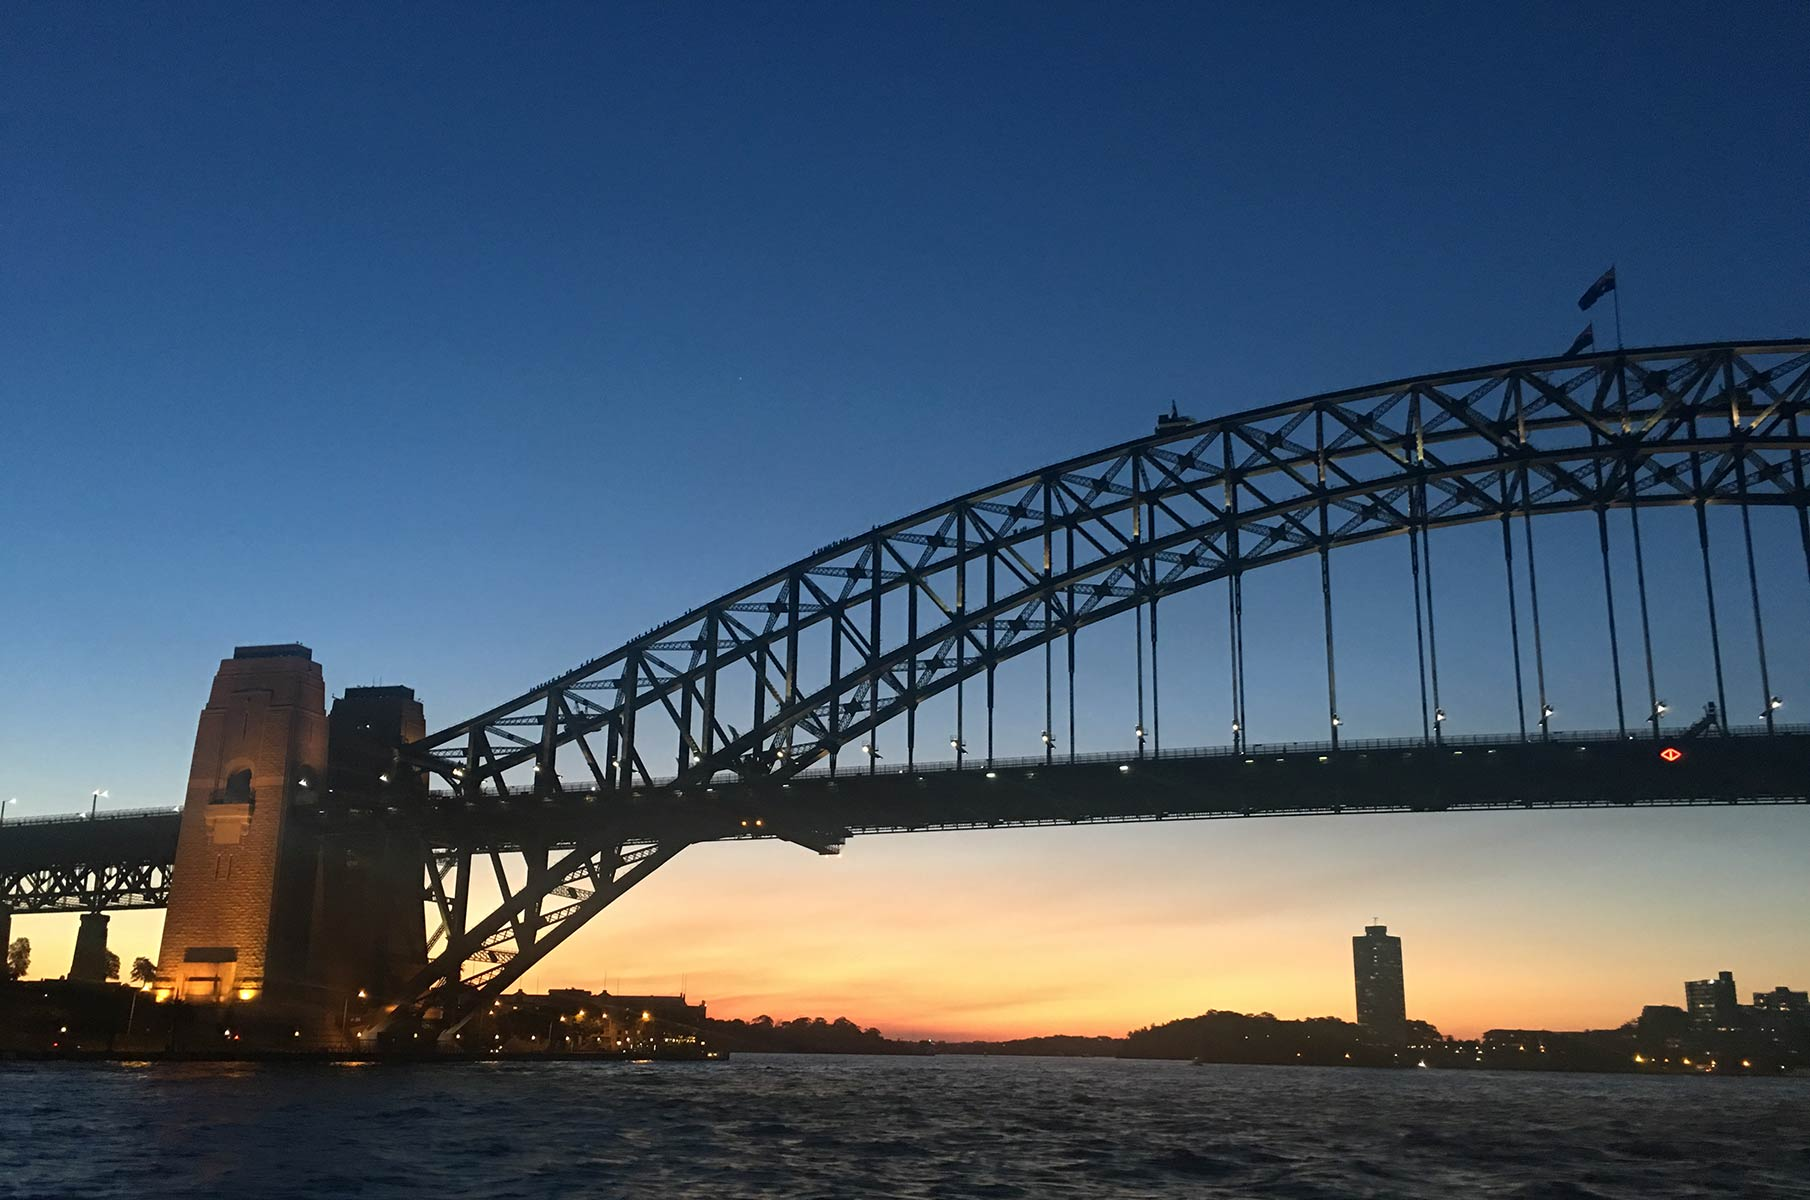 Sonnenuntergang an der Harbour Bay Bridge in Sydney, Australien